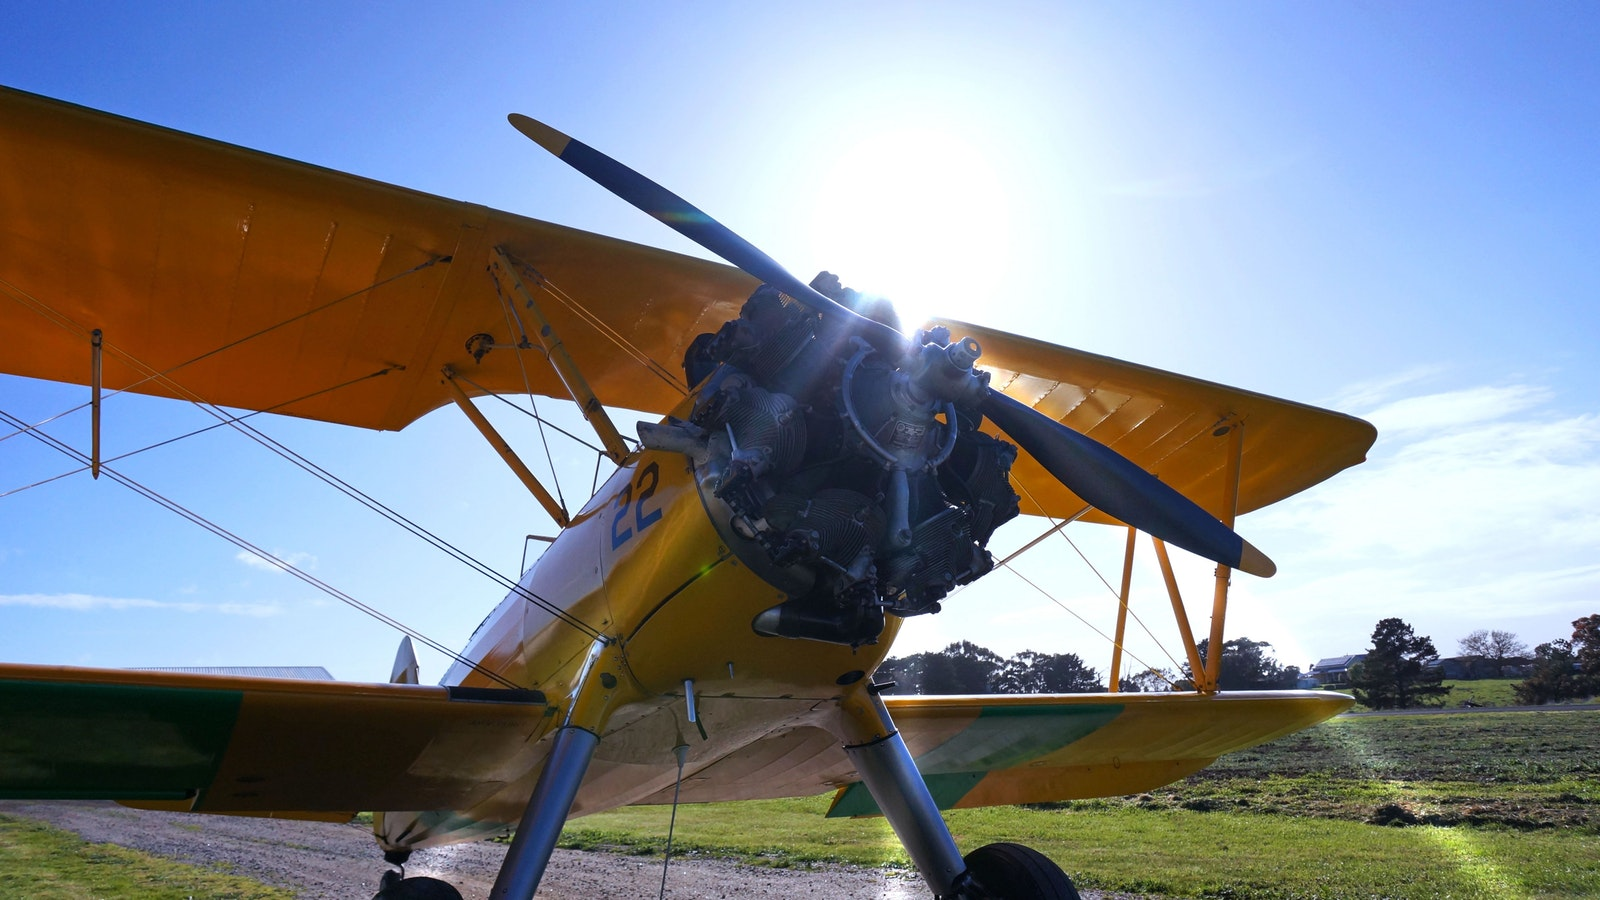 Tiger Moth World vintage biplane ready for takeoff